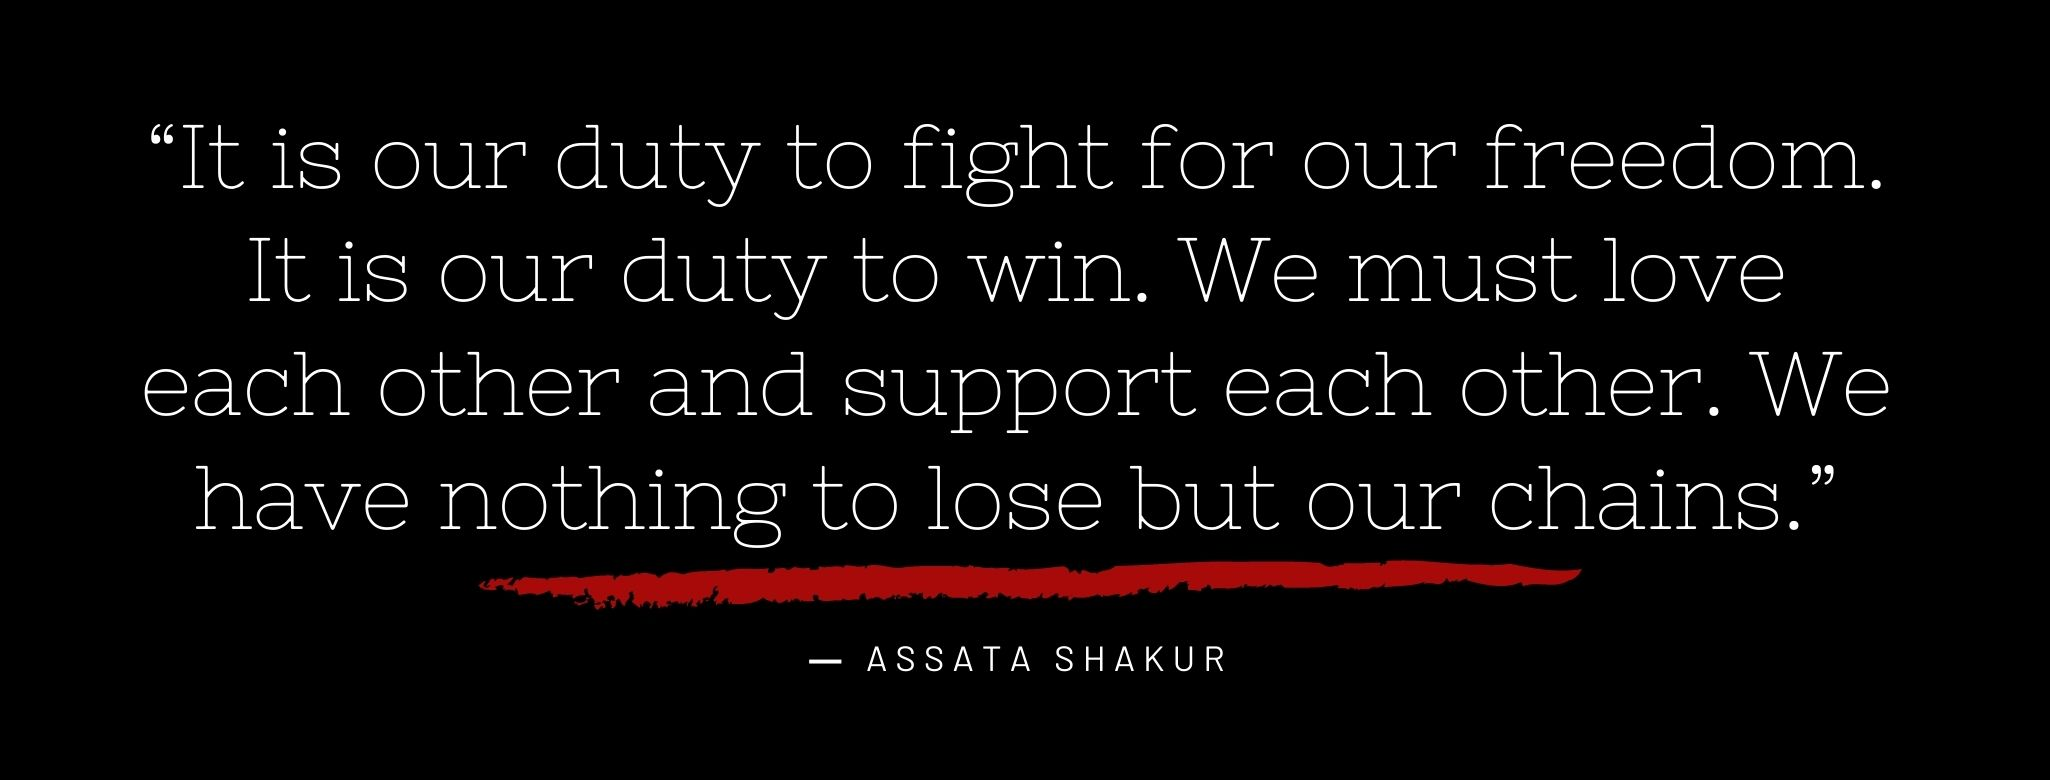 """It is our duty to fight for our freedom. It is our duty to win. We must love each other and support each other. We have nothing to lose but our chains."""